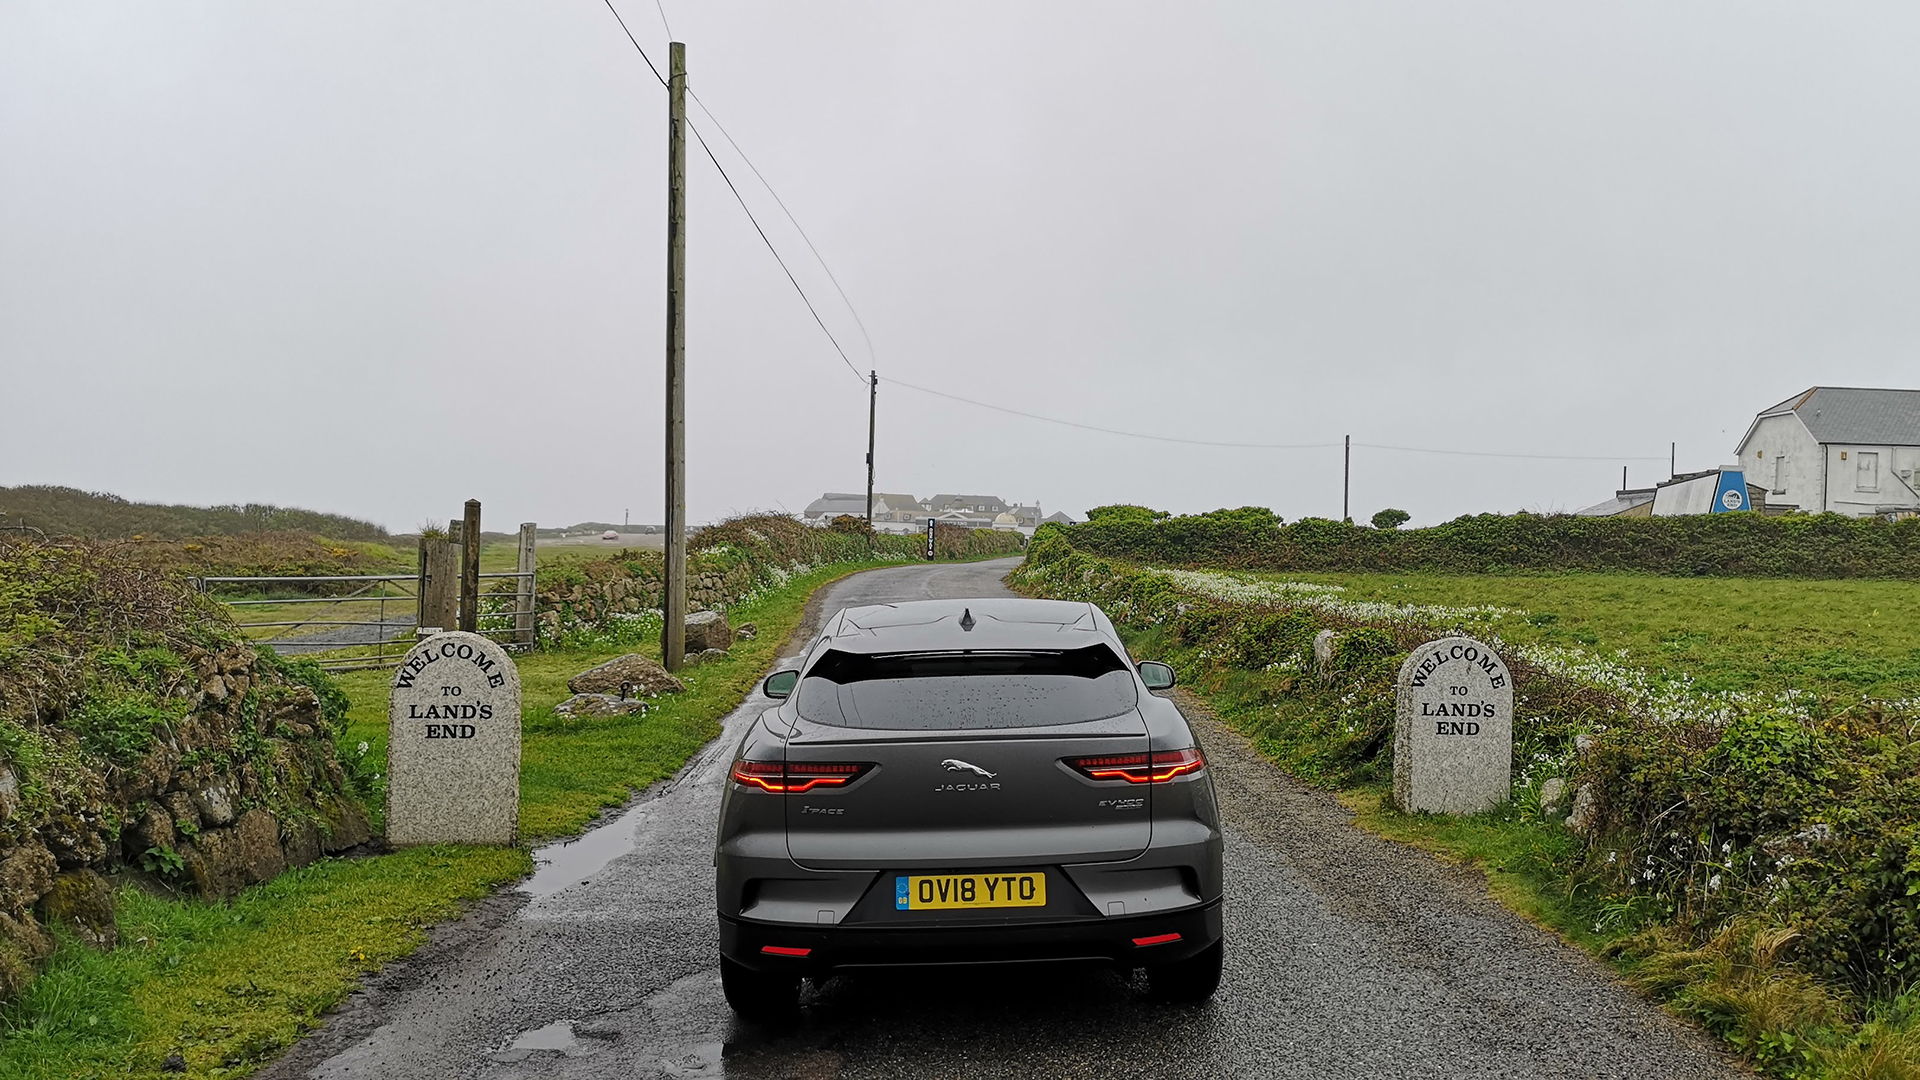 Jaguar I-PACE: pushed Lands End 6pLvsfZua5VT5gVFoyAC